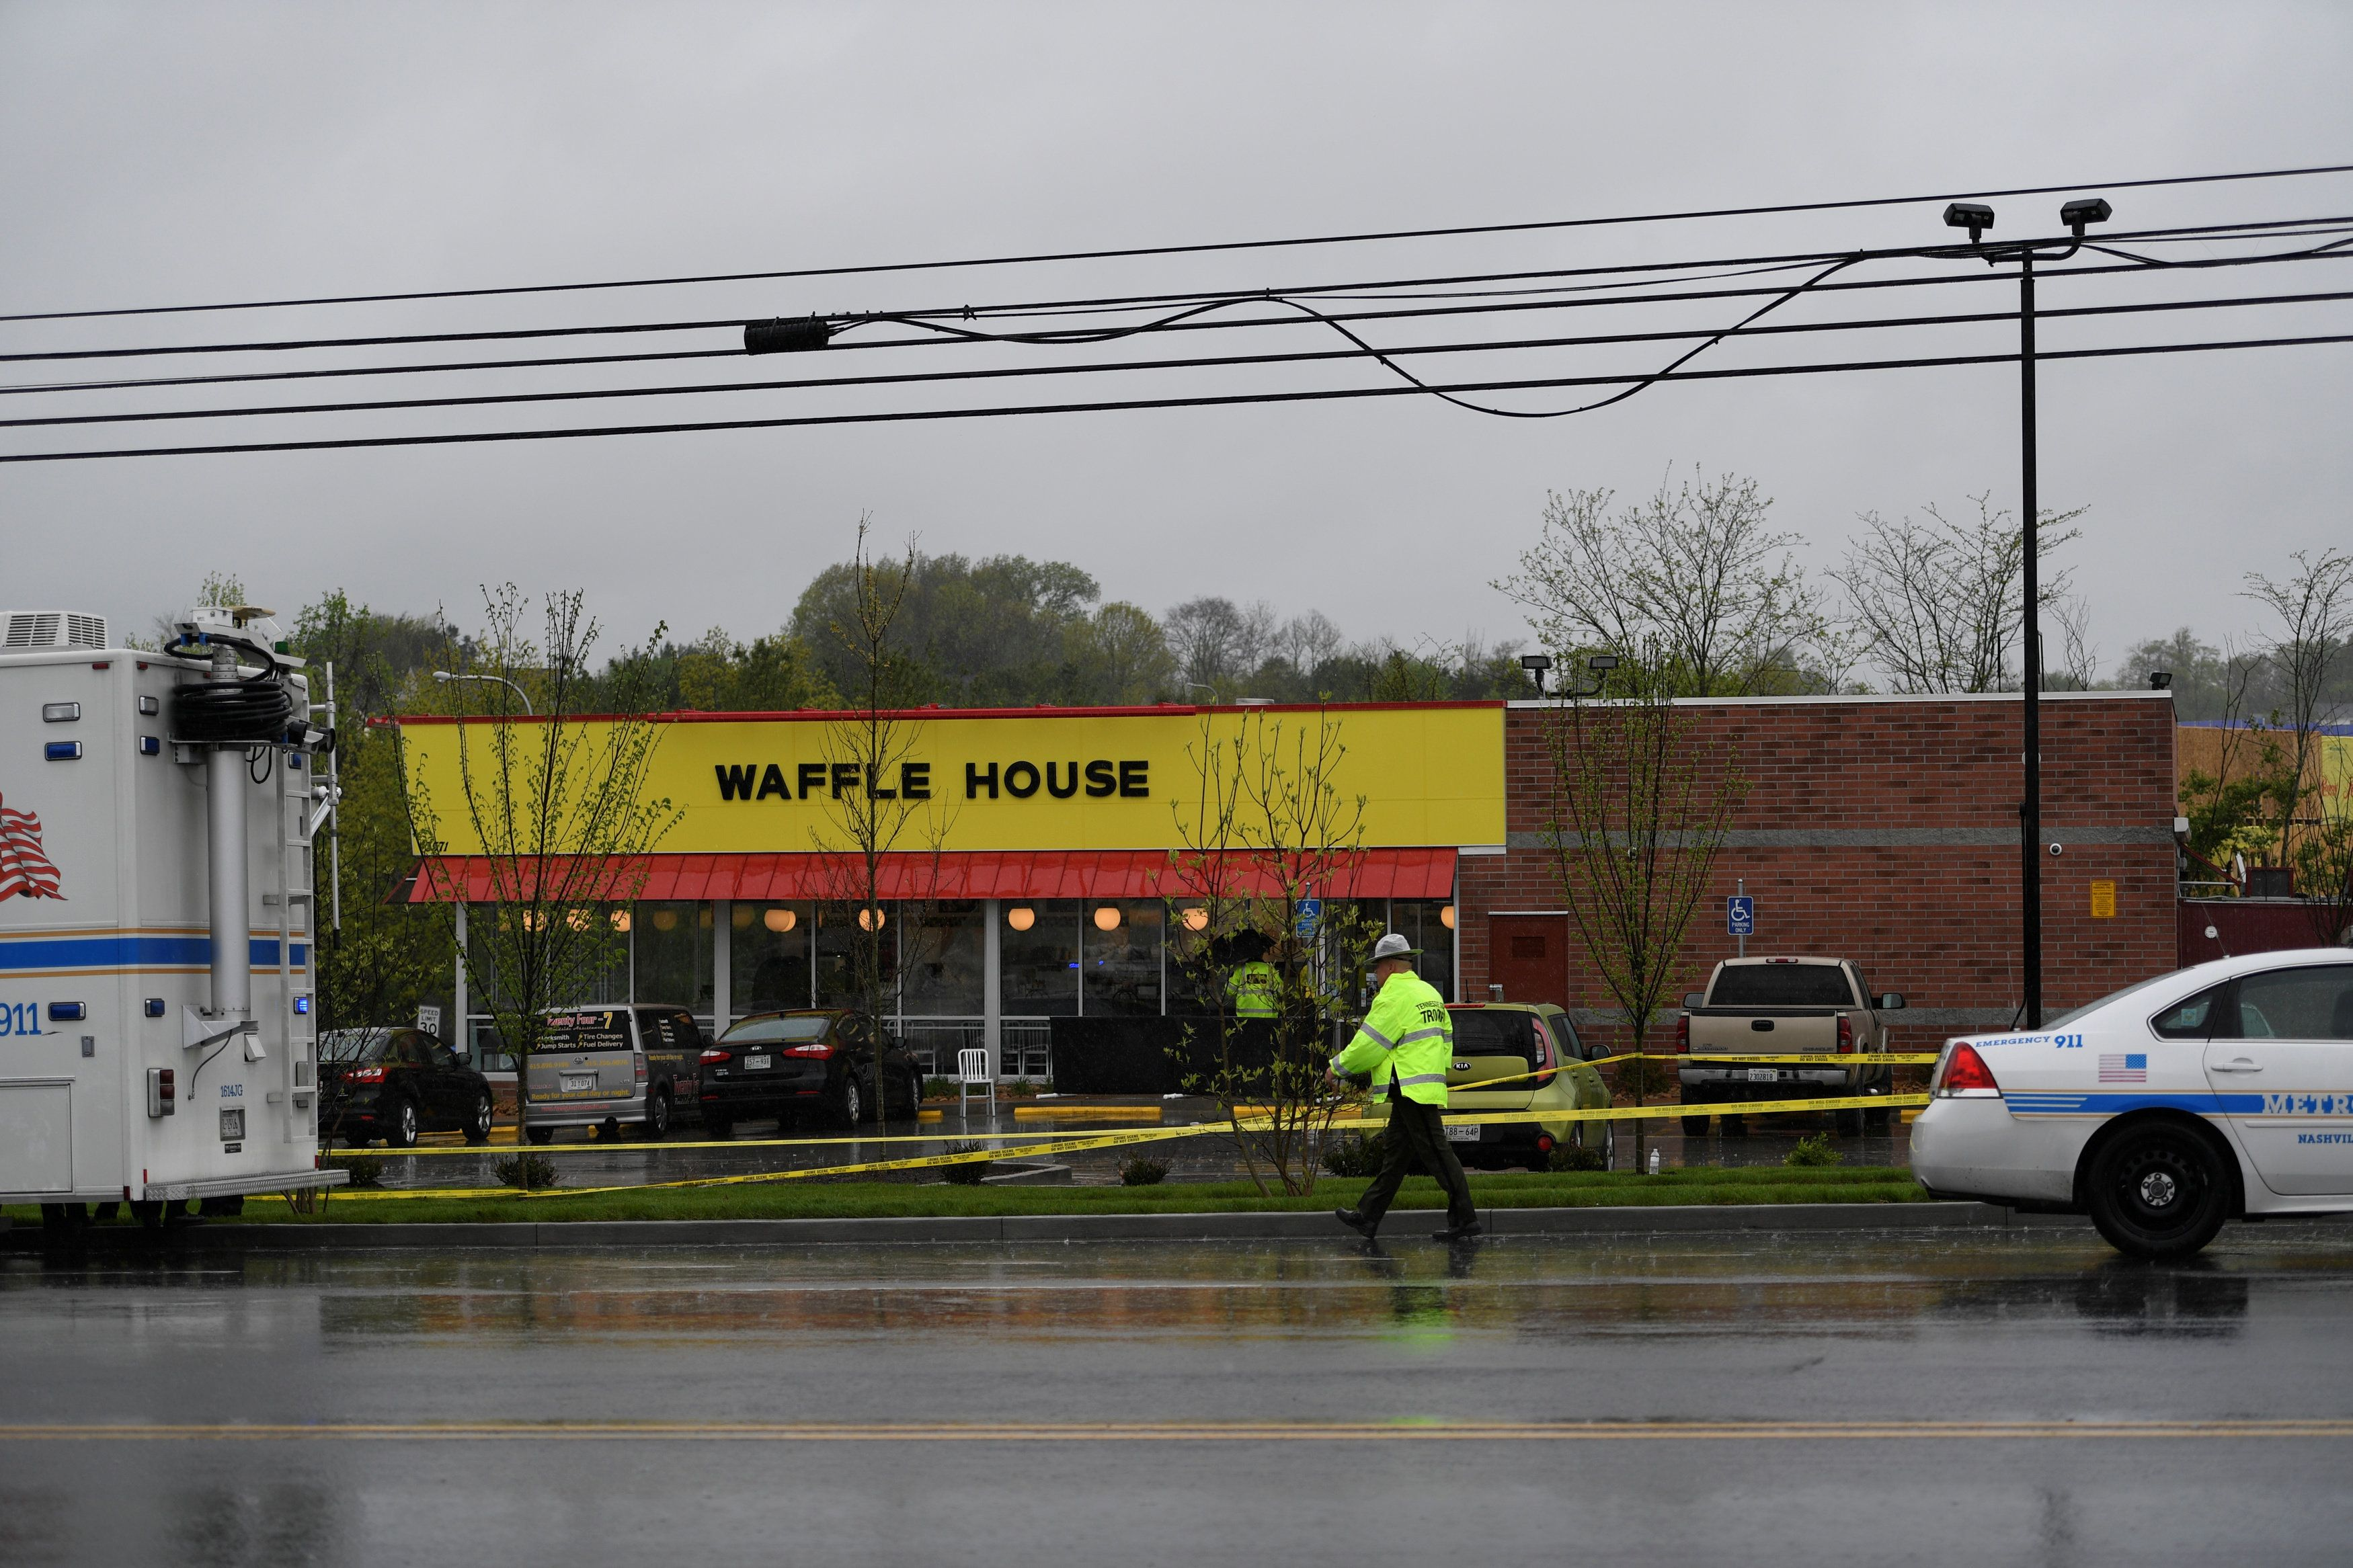 Metro Davidson County Police inspect the scene of a fatal shooting at a Waffle House restaurant near Nashville, Tennessee, U.S., April 22, 2018.  REUTERS/Harrison McClary